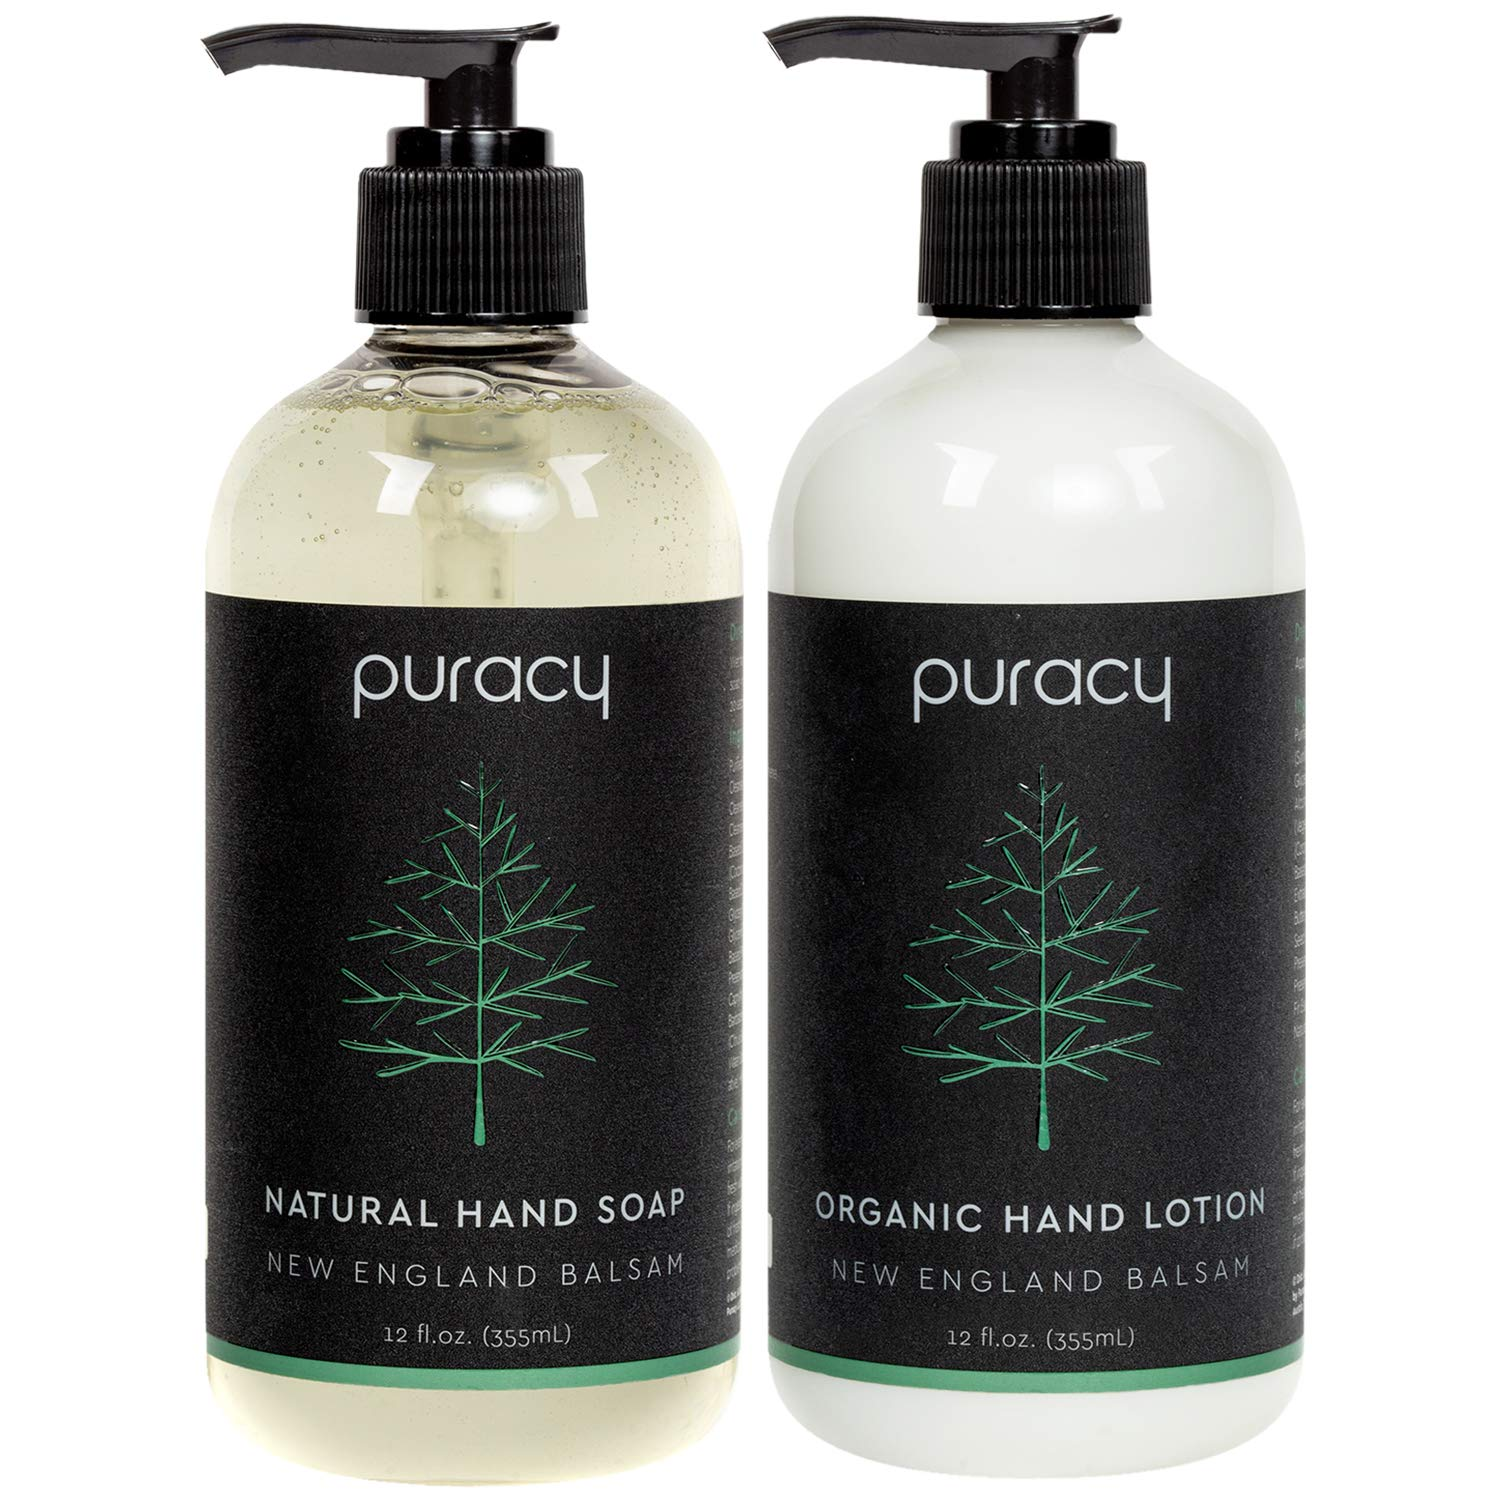 Puracy Hand Soap & Lotion Set, Balsam Fir, Natural & Organic Fraser Pine Aromas, 12-Ounce (2-Pack)